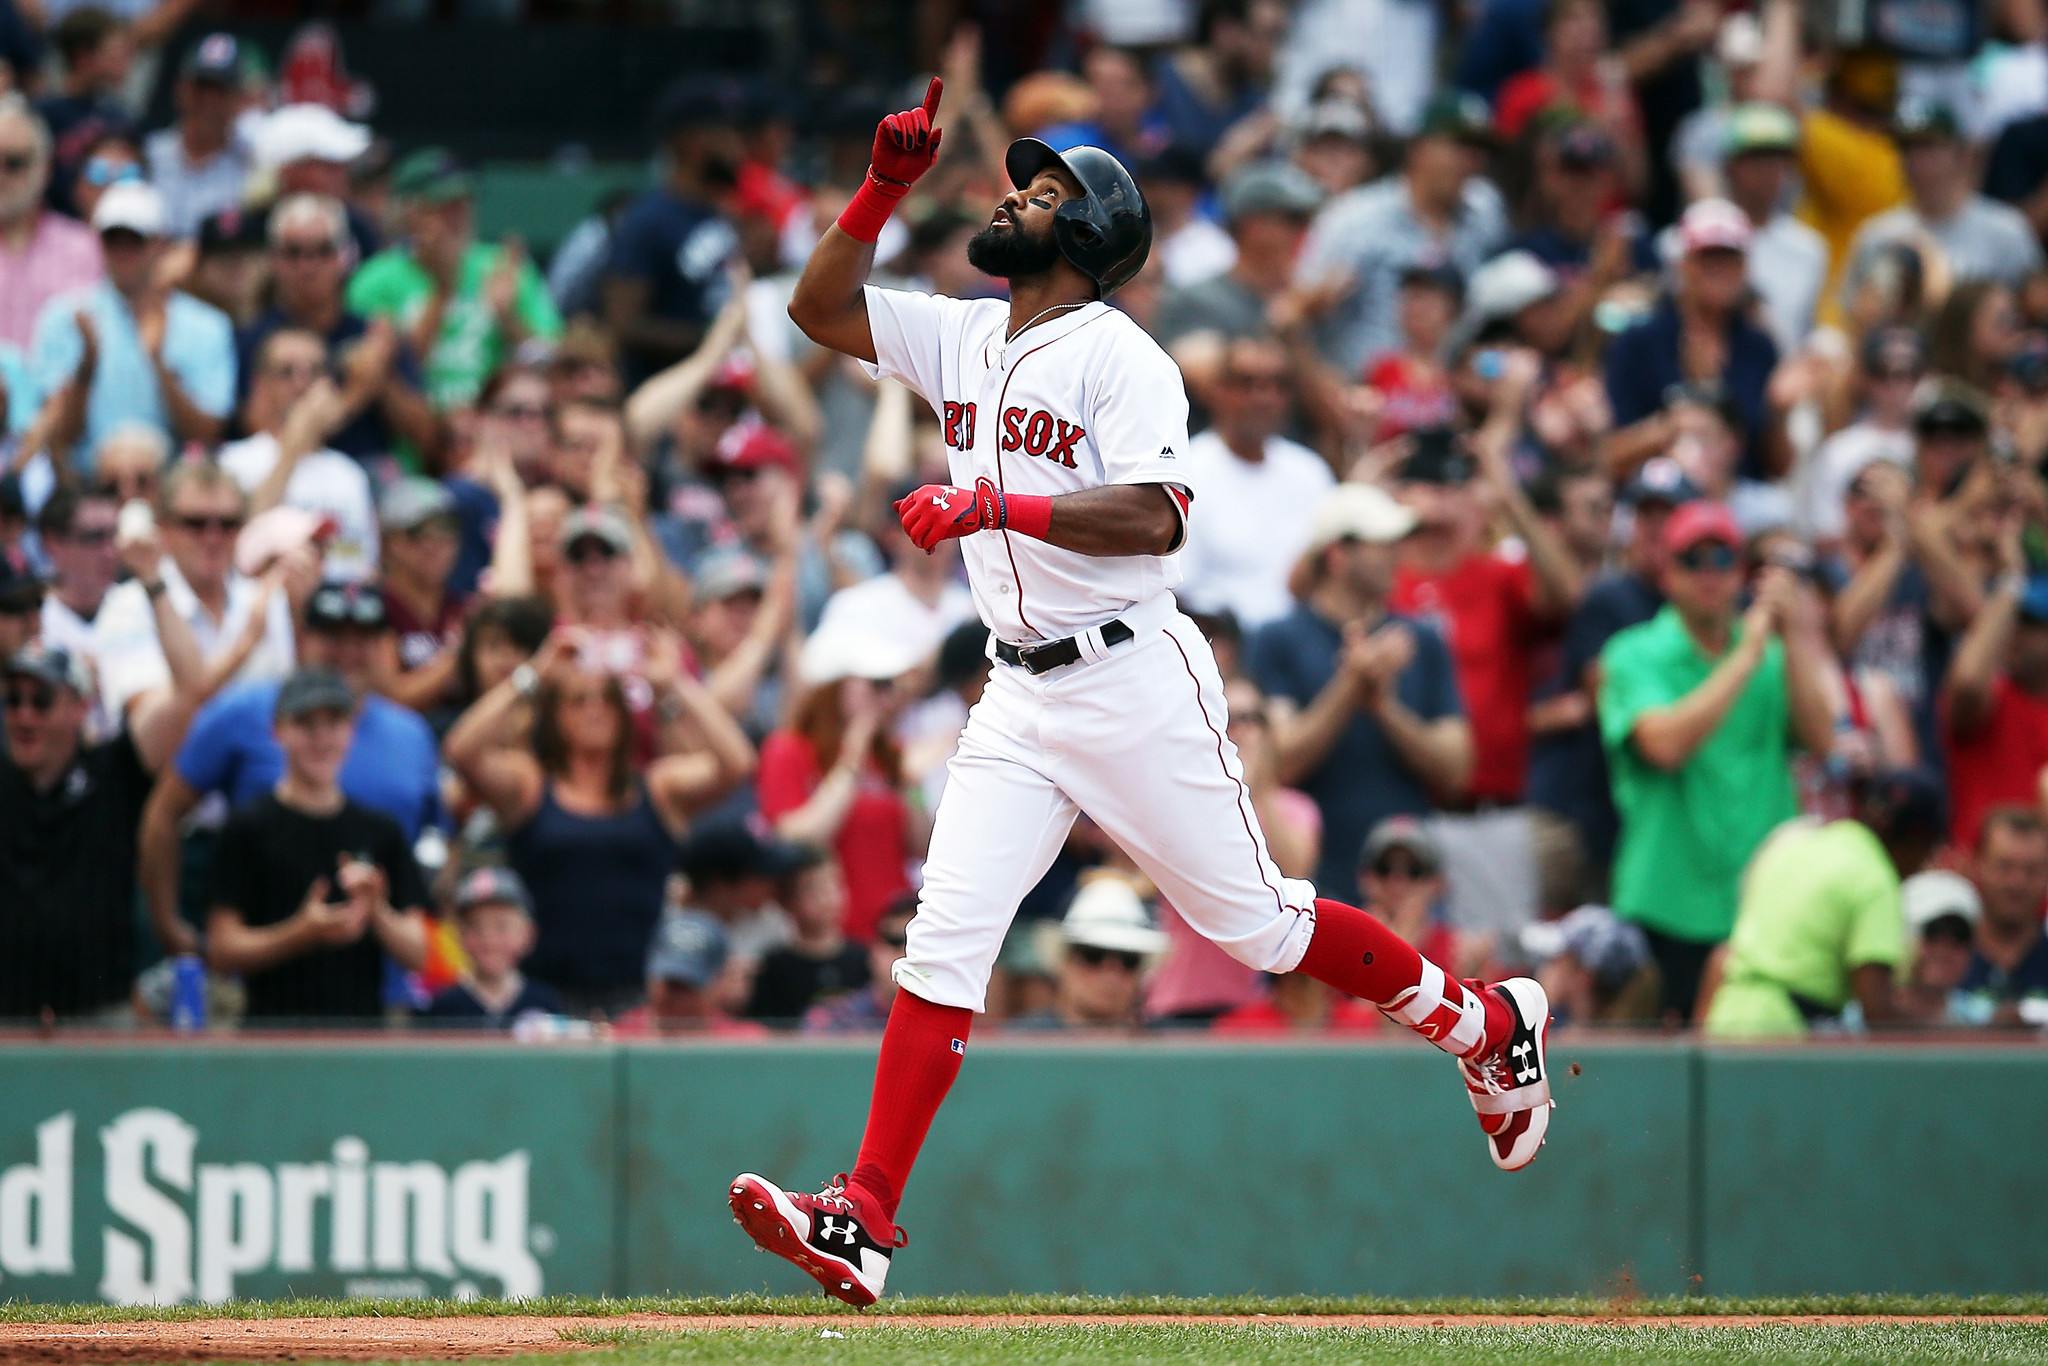 Hc-red-sox-white-sox-0807-20170806